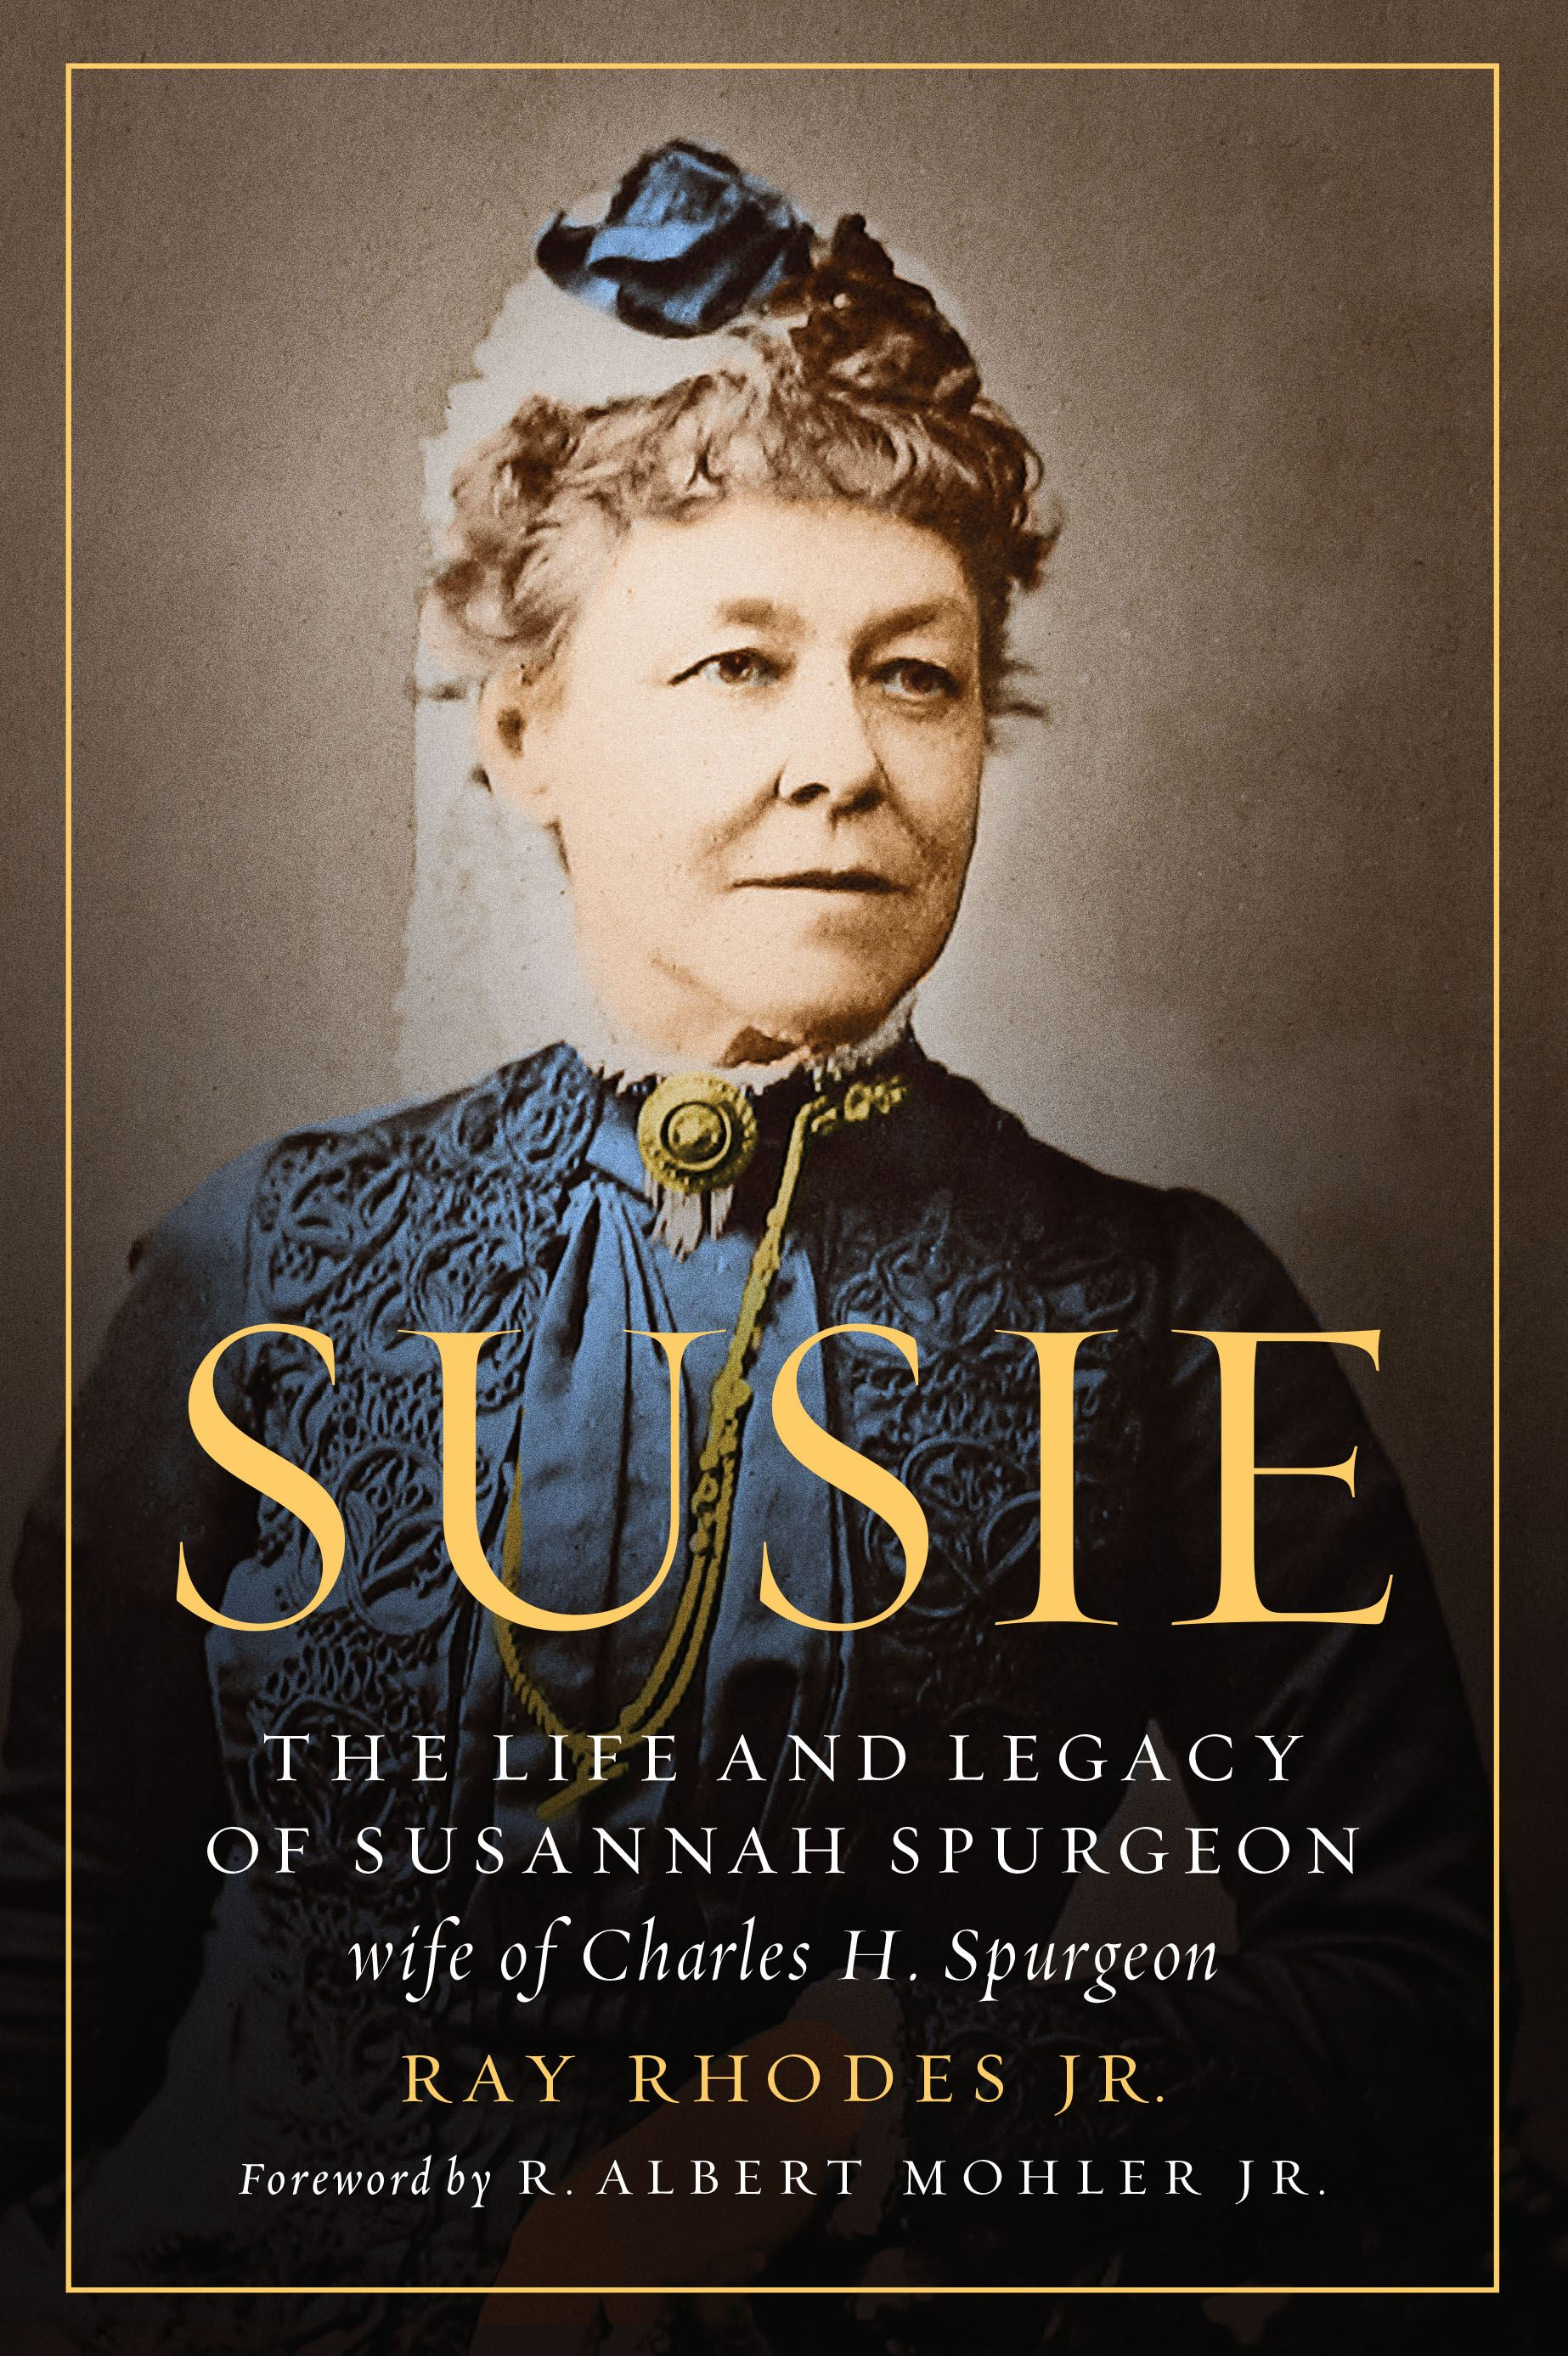 Susie the life and legacy of Susannah Spurgeon book cover